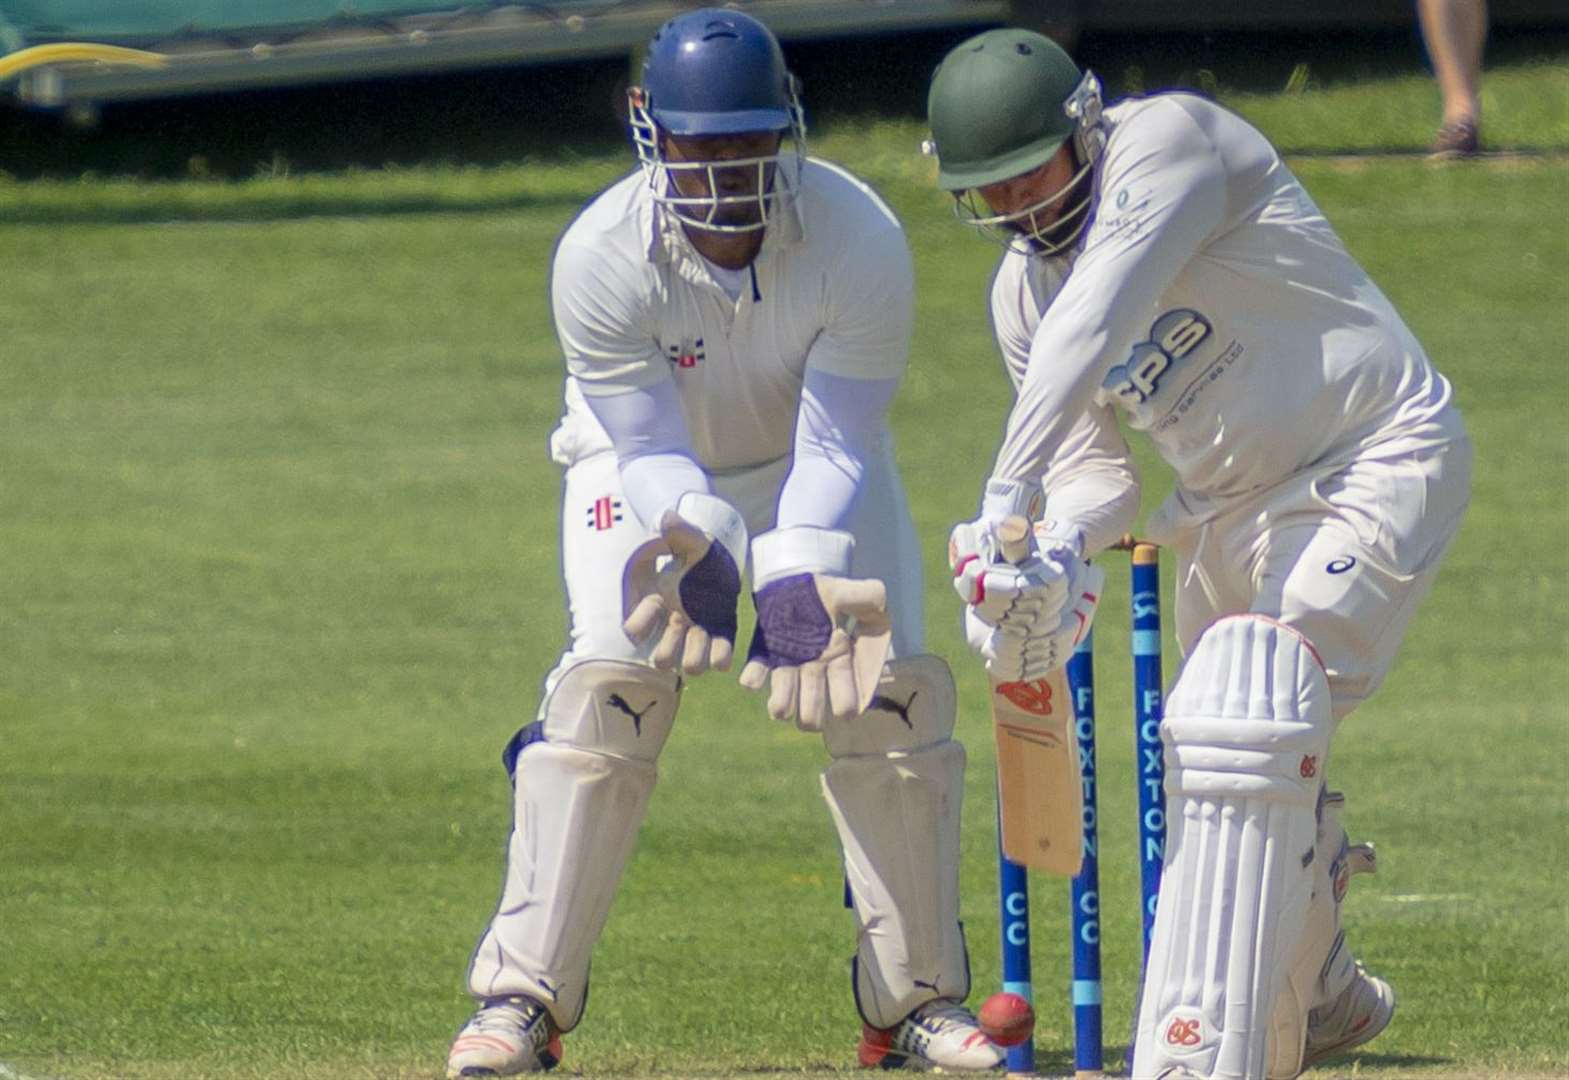 Josh Smith shines with bat and ball for Cambridgeshire in MCCA Unicorns Championship